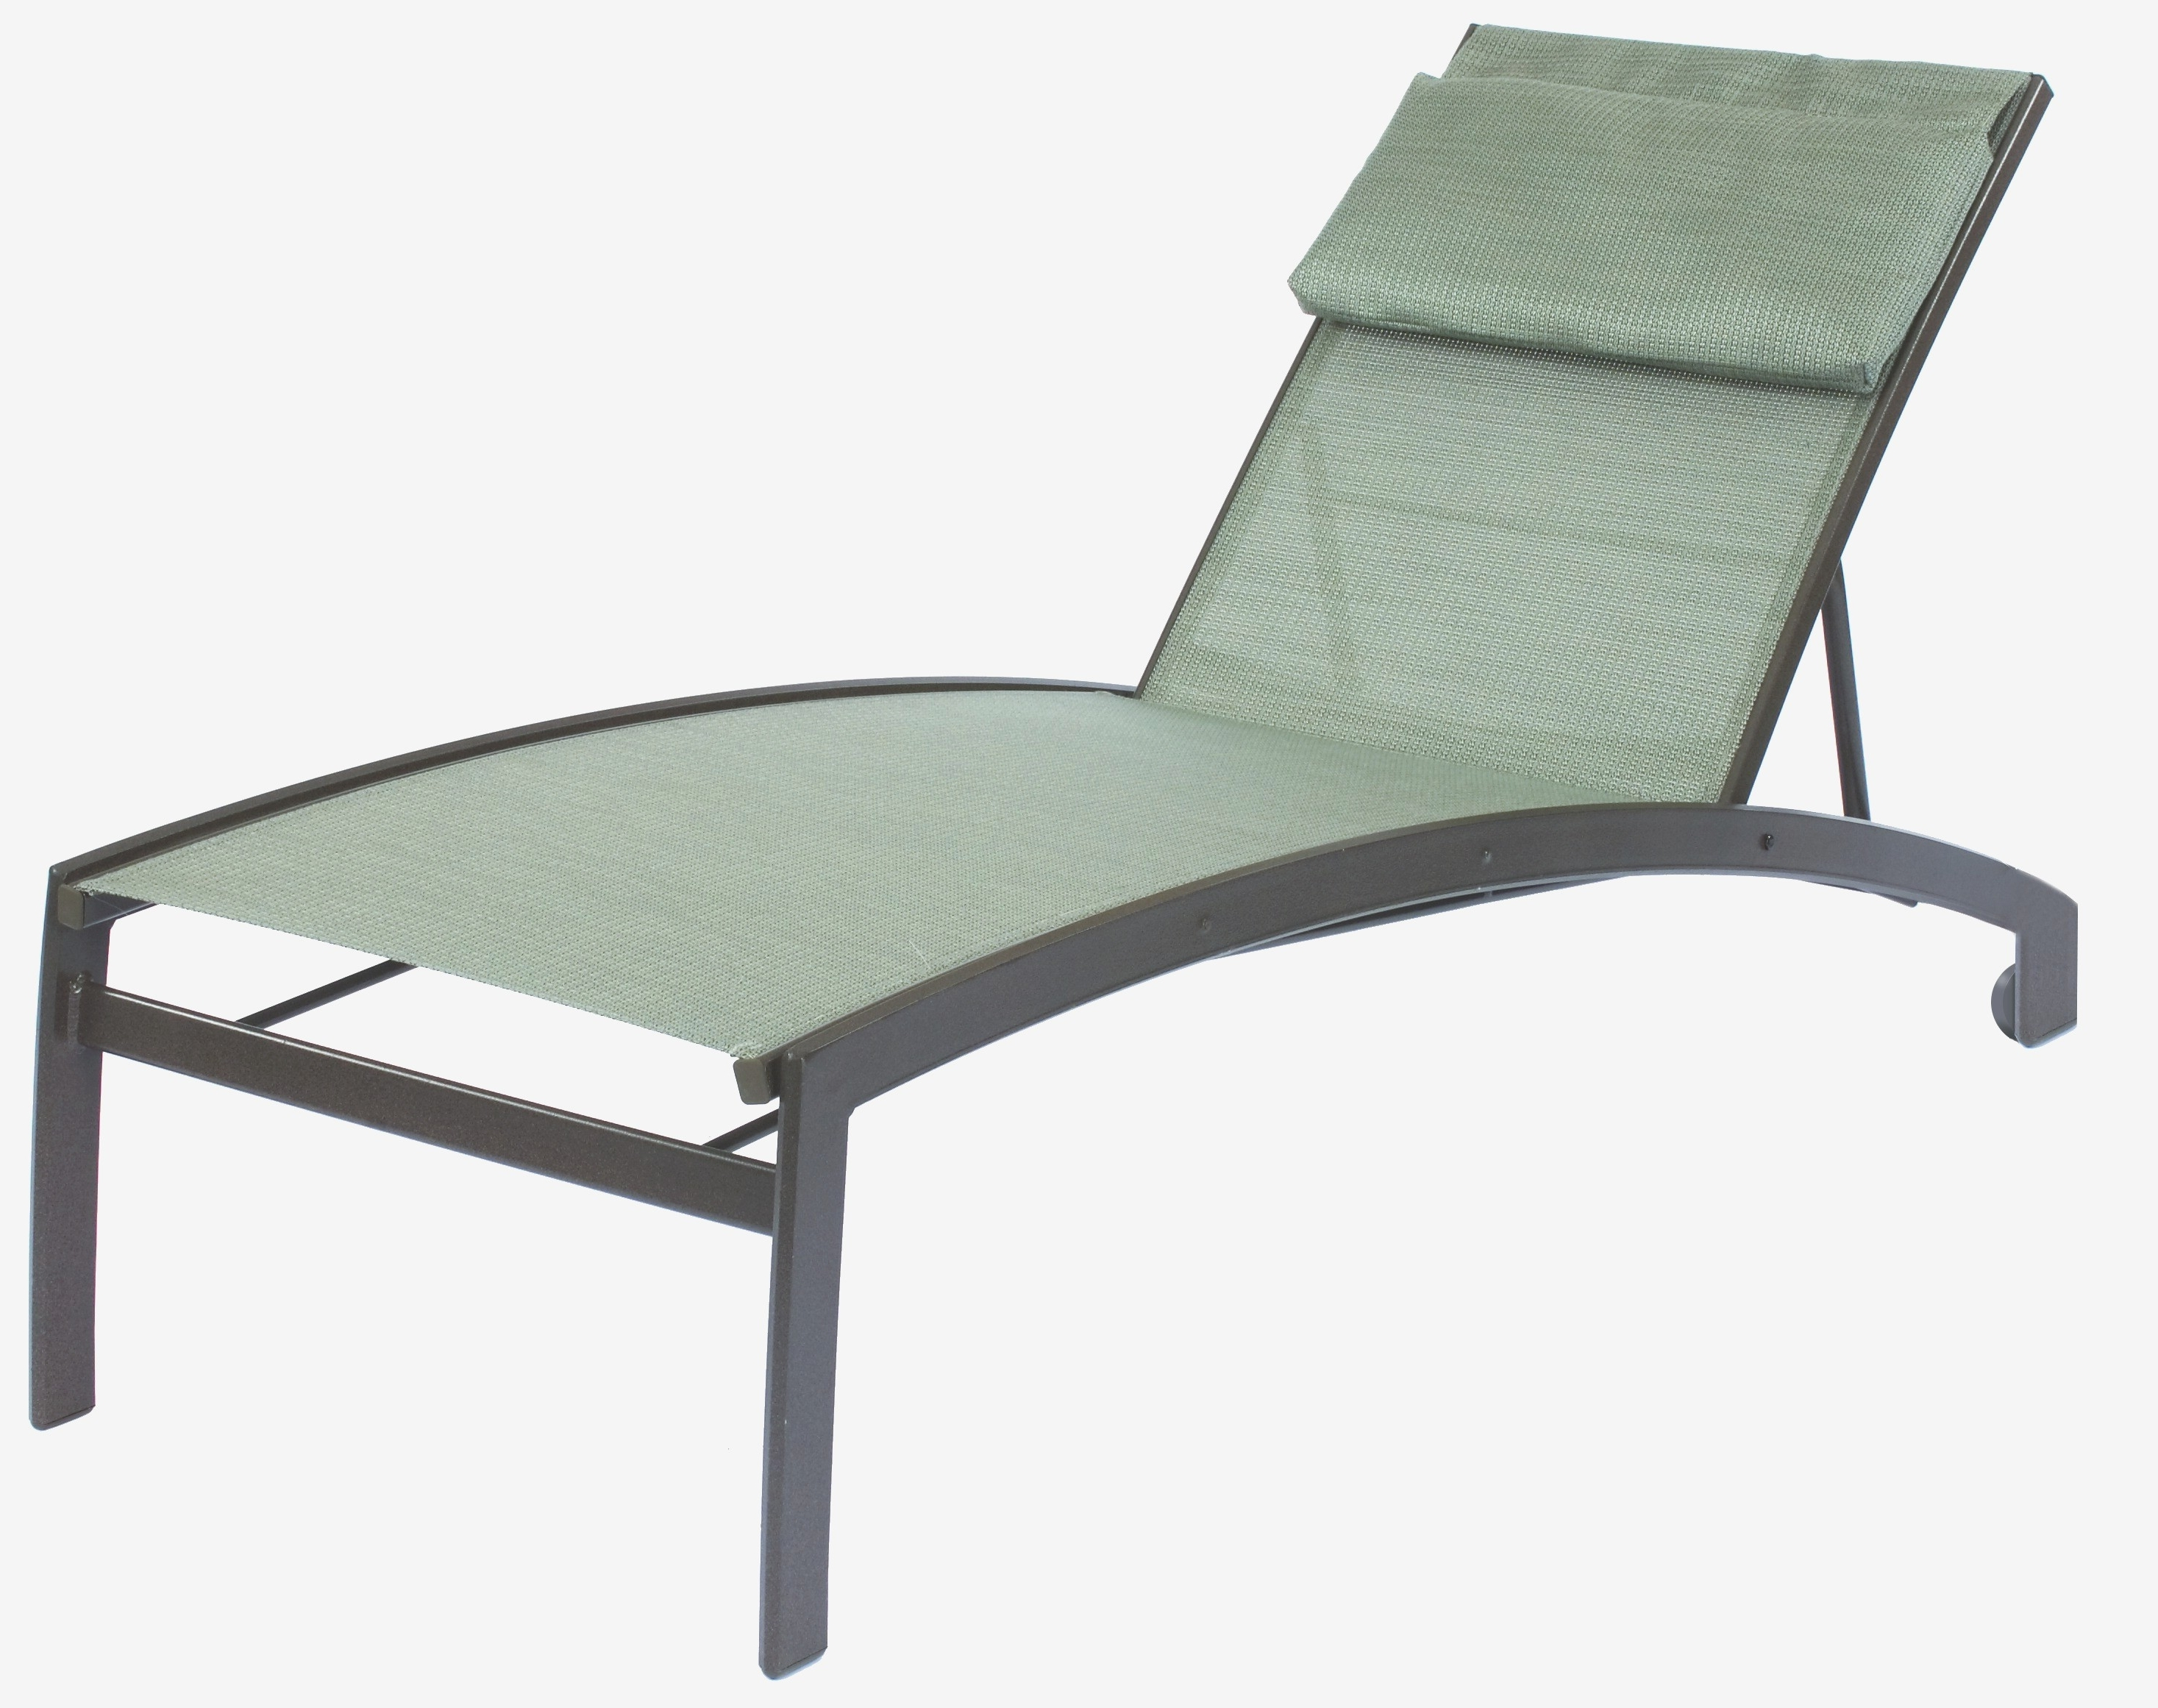 2018 Suncoast Patio Furniture Luxury Outdoor Chaise Lounge Chairs With Inside Luxury Outdoor Chaise Lounge Chairs (View 1 of 15)